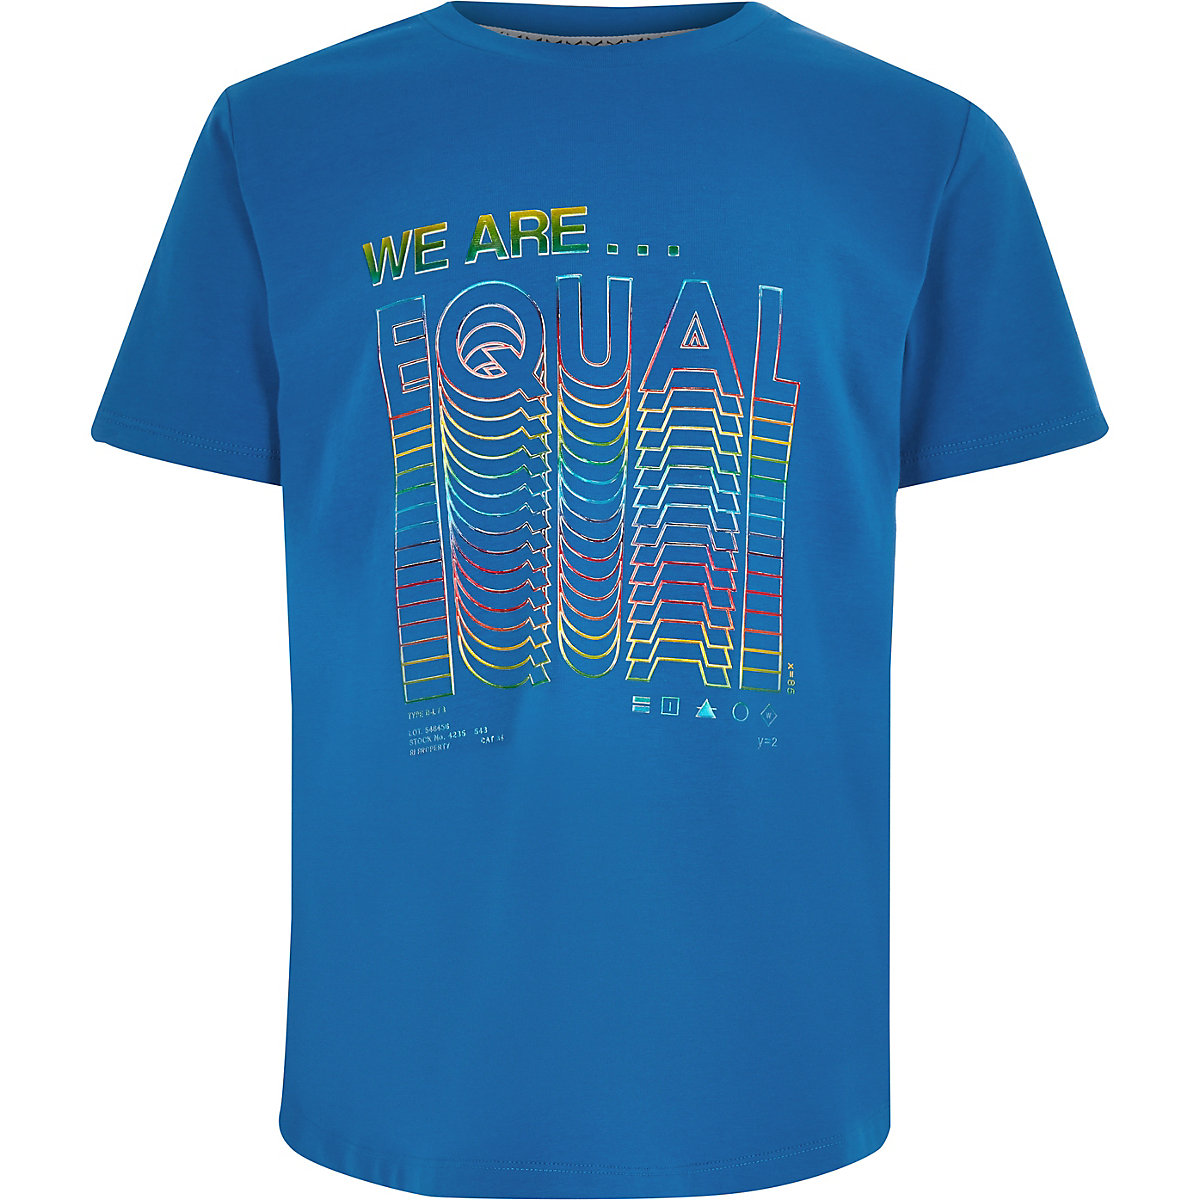 Be inclusive blue 'We are equal' T-shirt